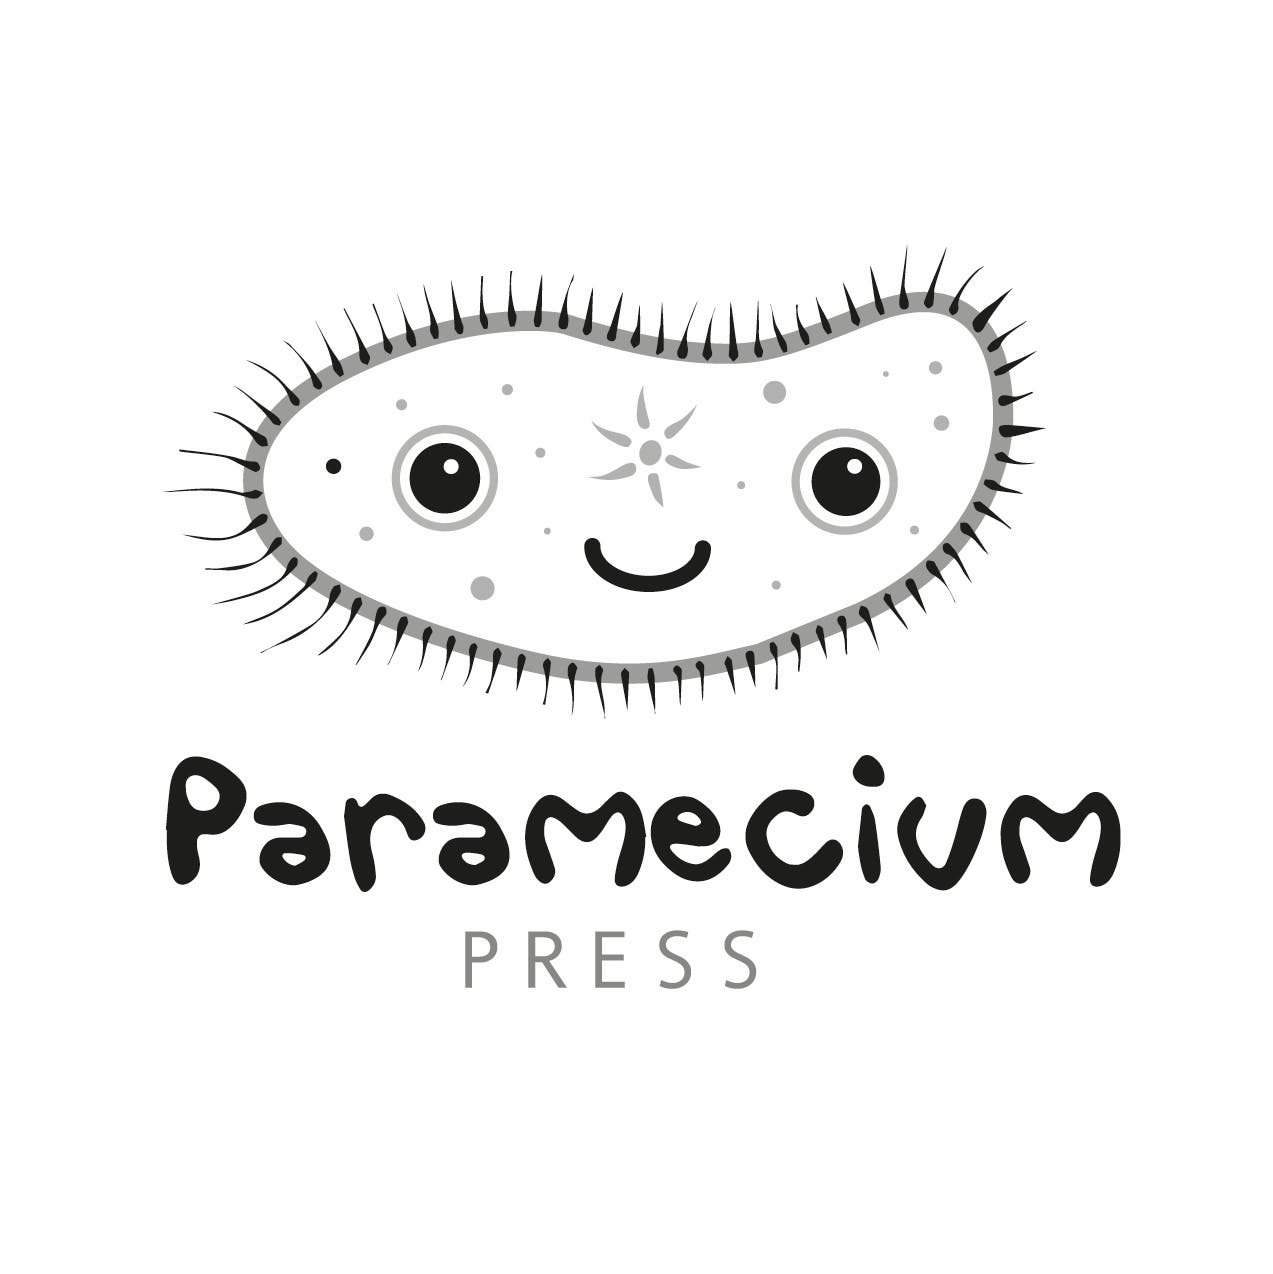 An illustration logo of a cute smiling microbe